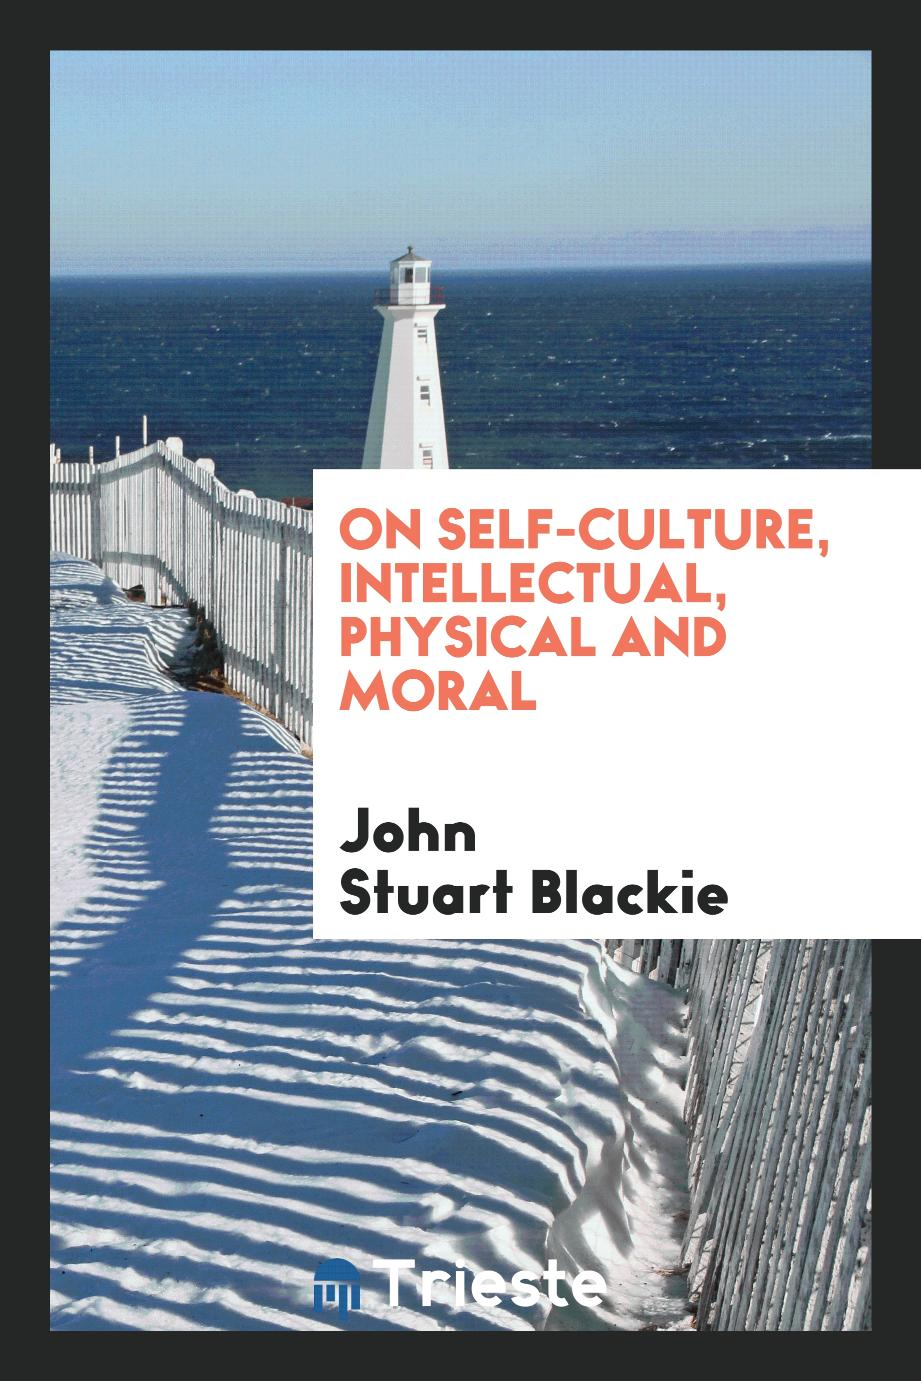 On Self-Culture, Intellectual, Physical and Moral